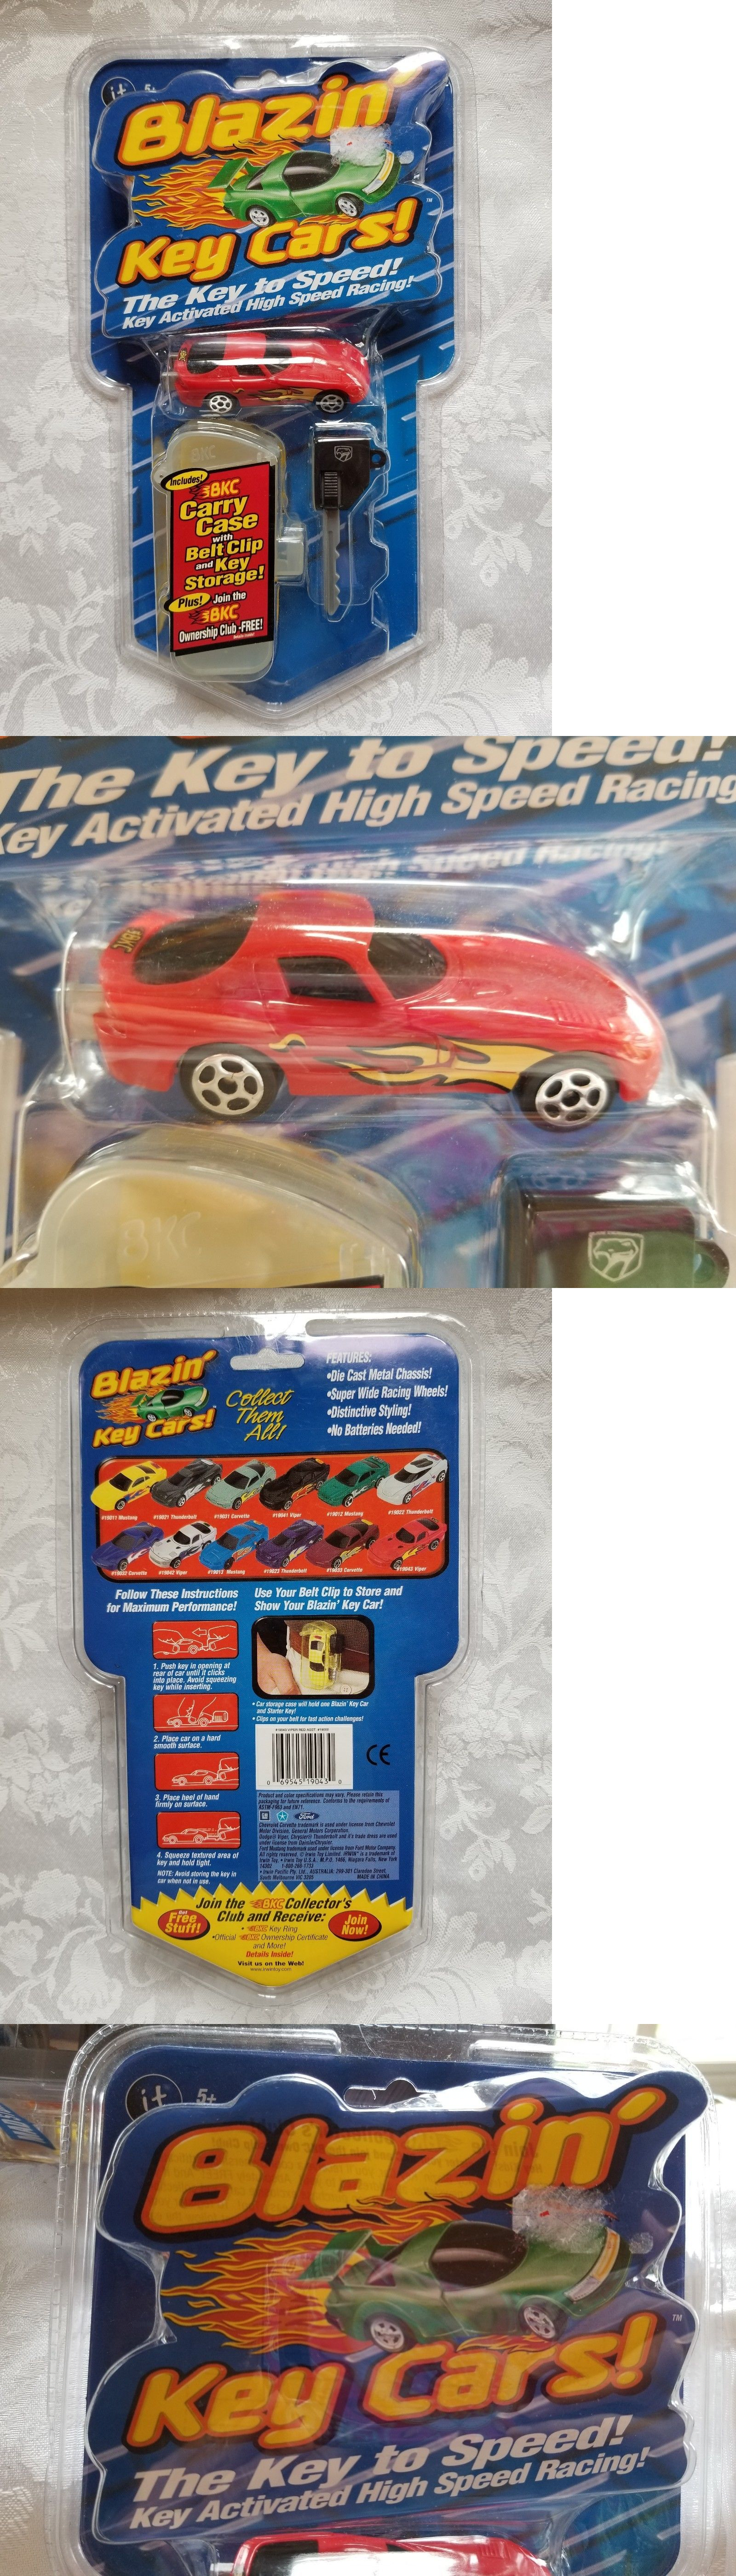 Toys car keys  Blazinu Key Cars Irwin Toys Red Dodge Viper with Carry Case Belt